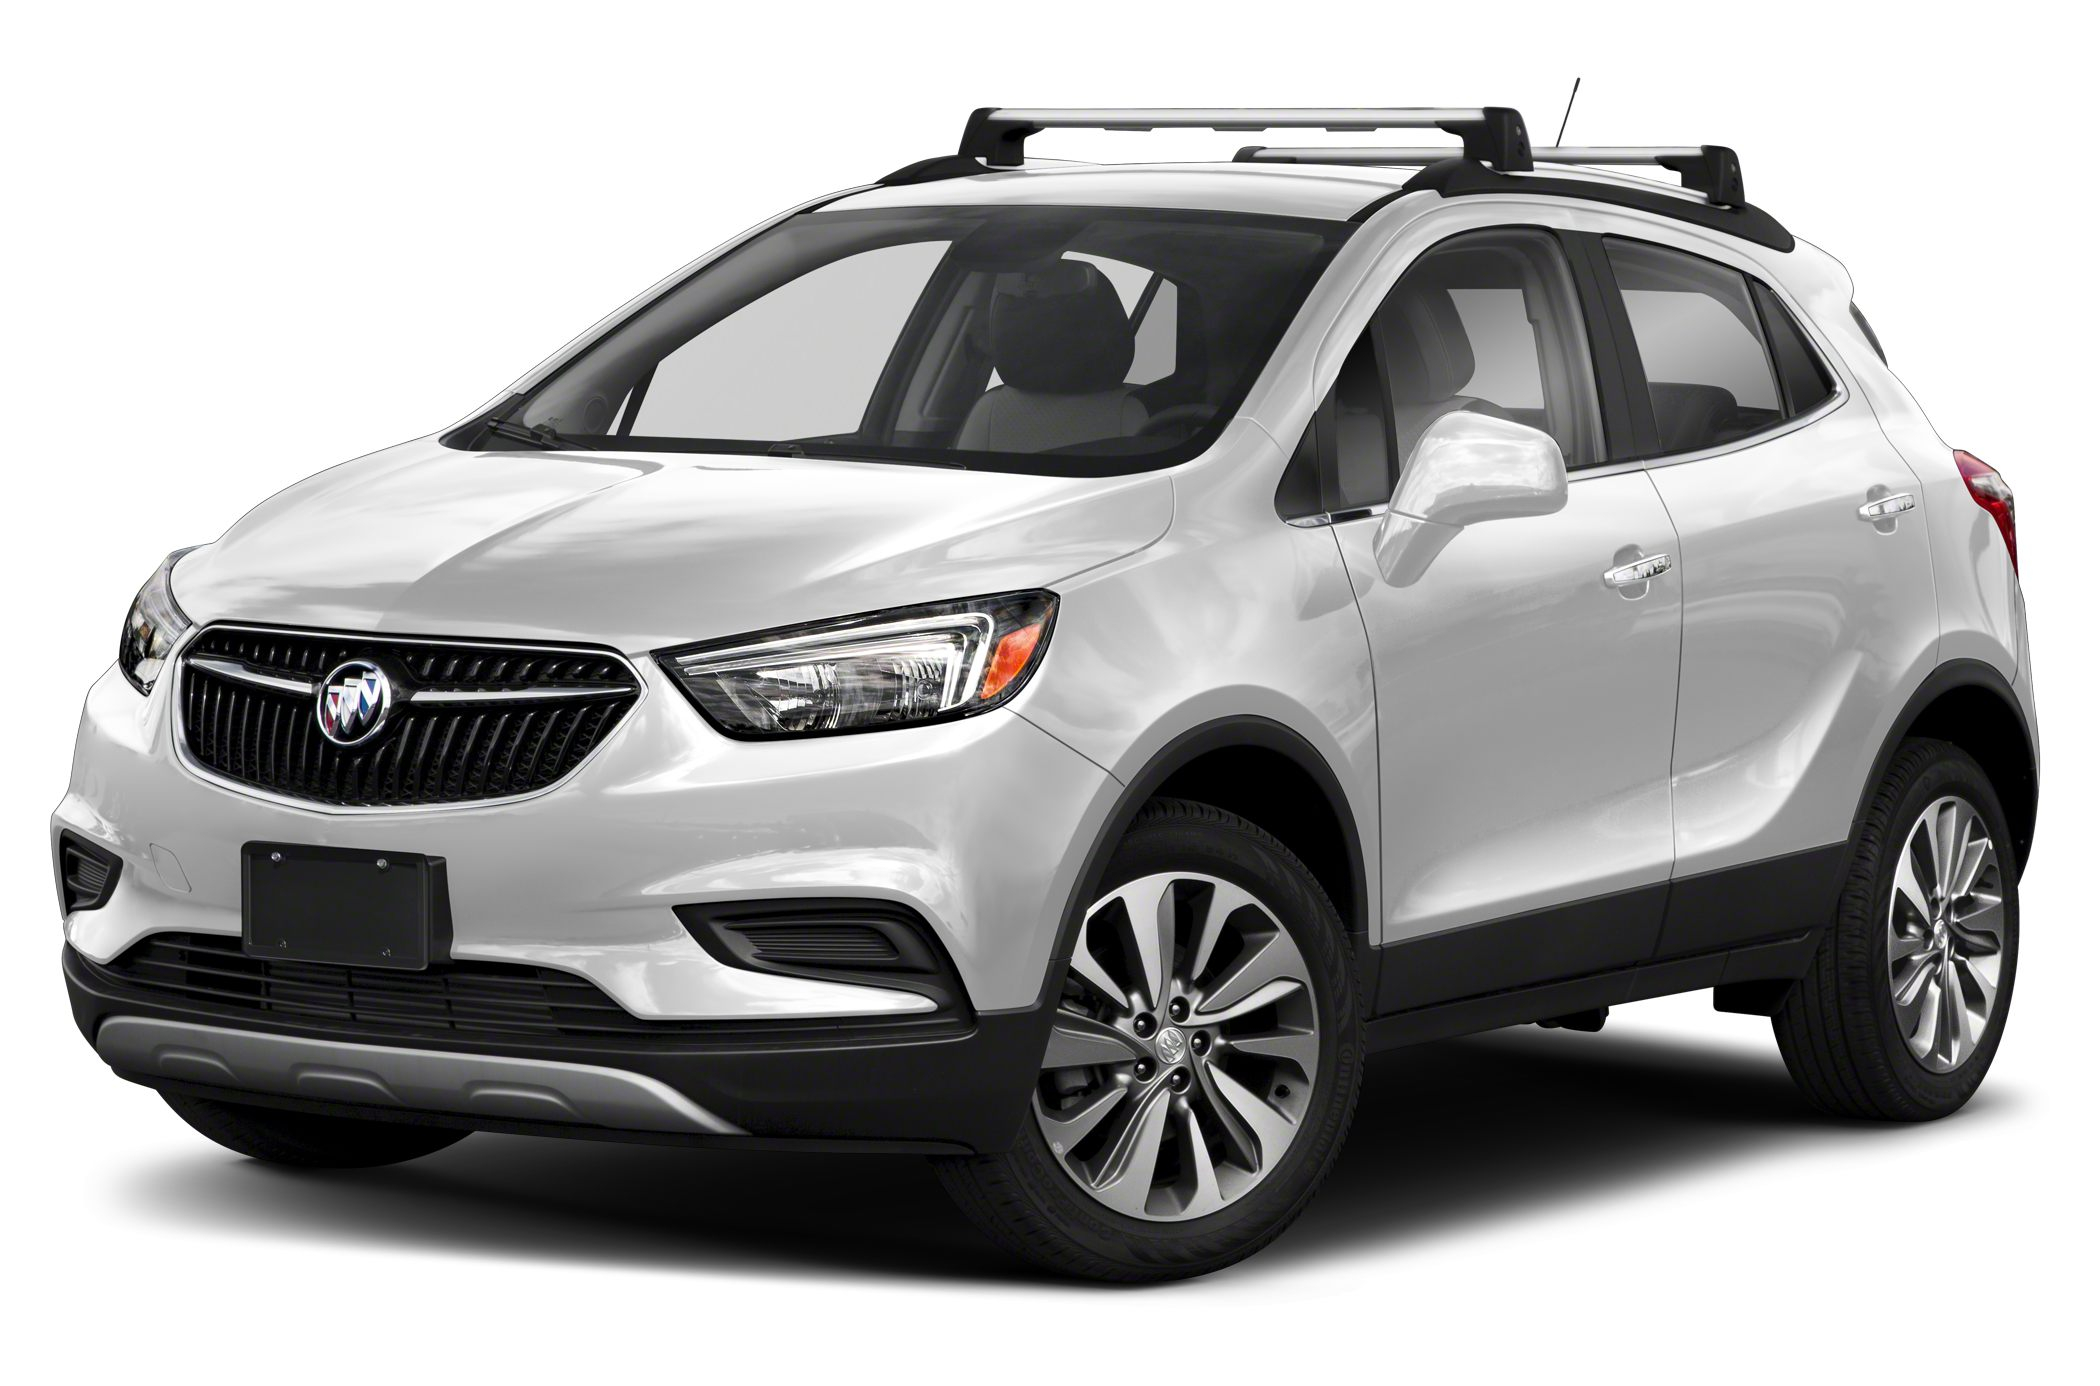 2021 Buick Encore Base Front-Wheel Drive Specs And Prices 2021 Buick Encore Transmission, Tire Size, Test Drive